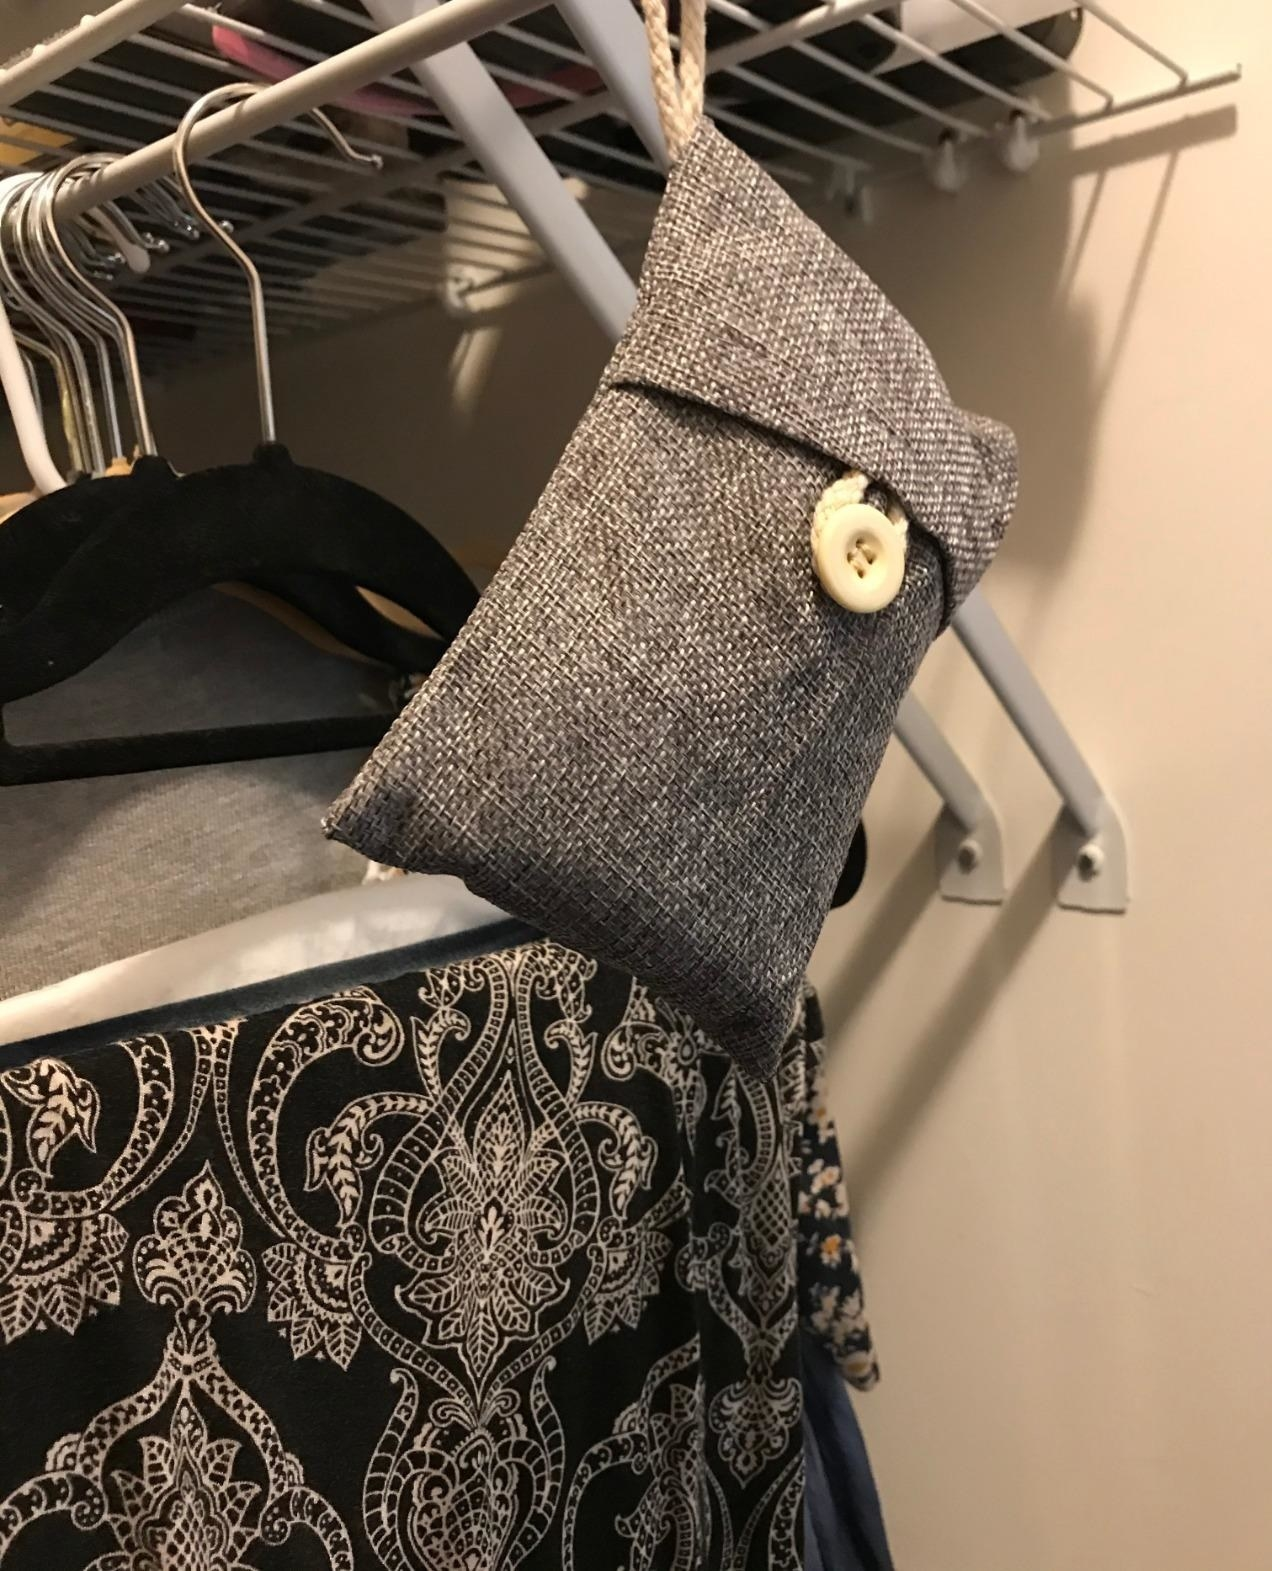 one of the small gray bags hanging in a closet